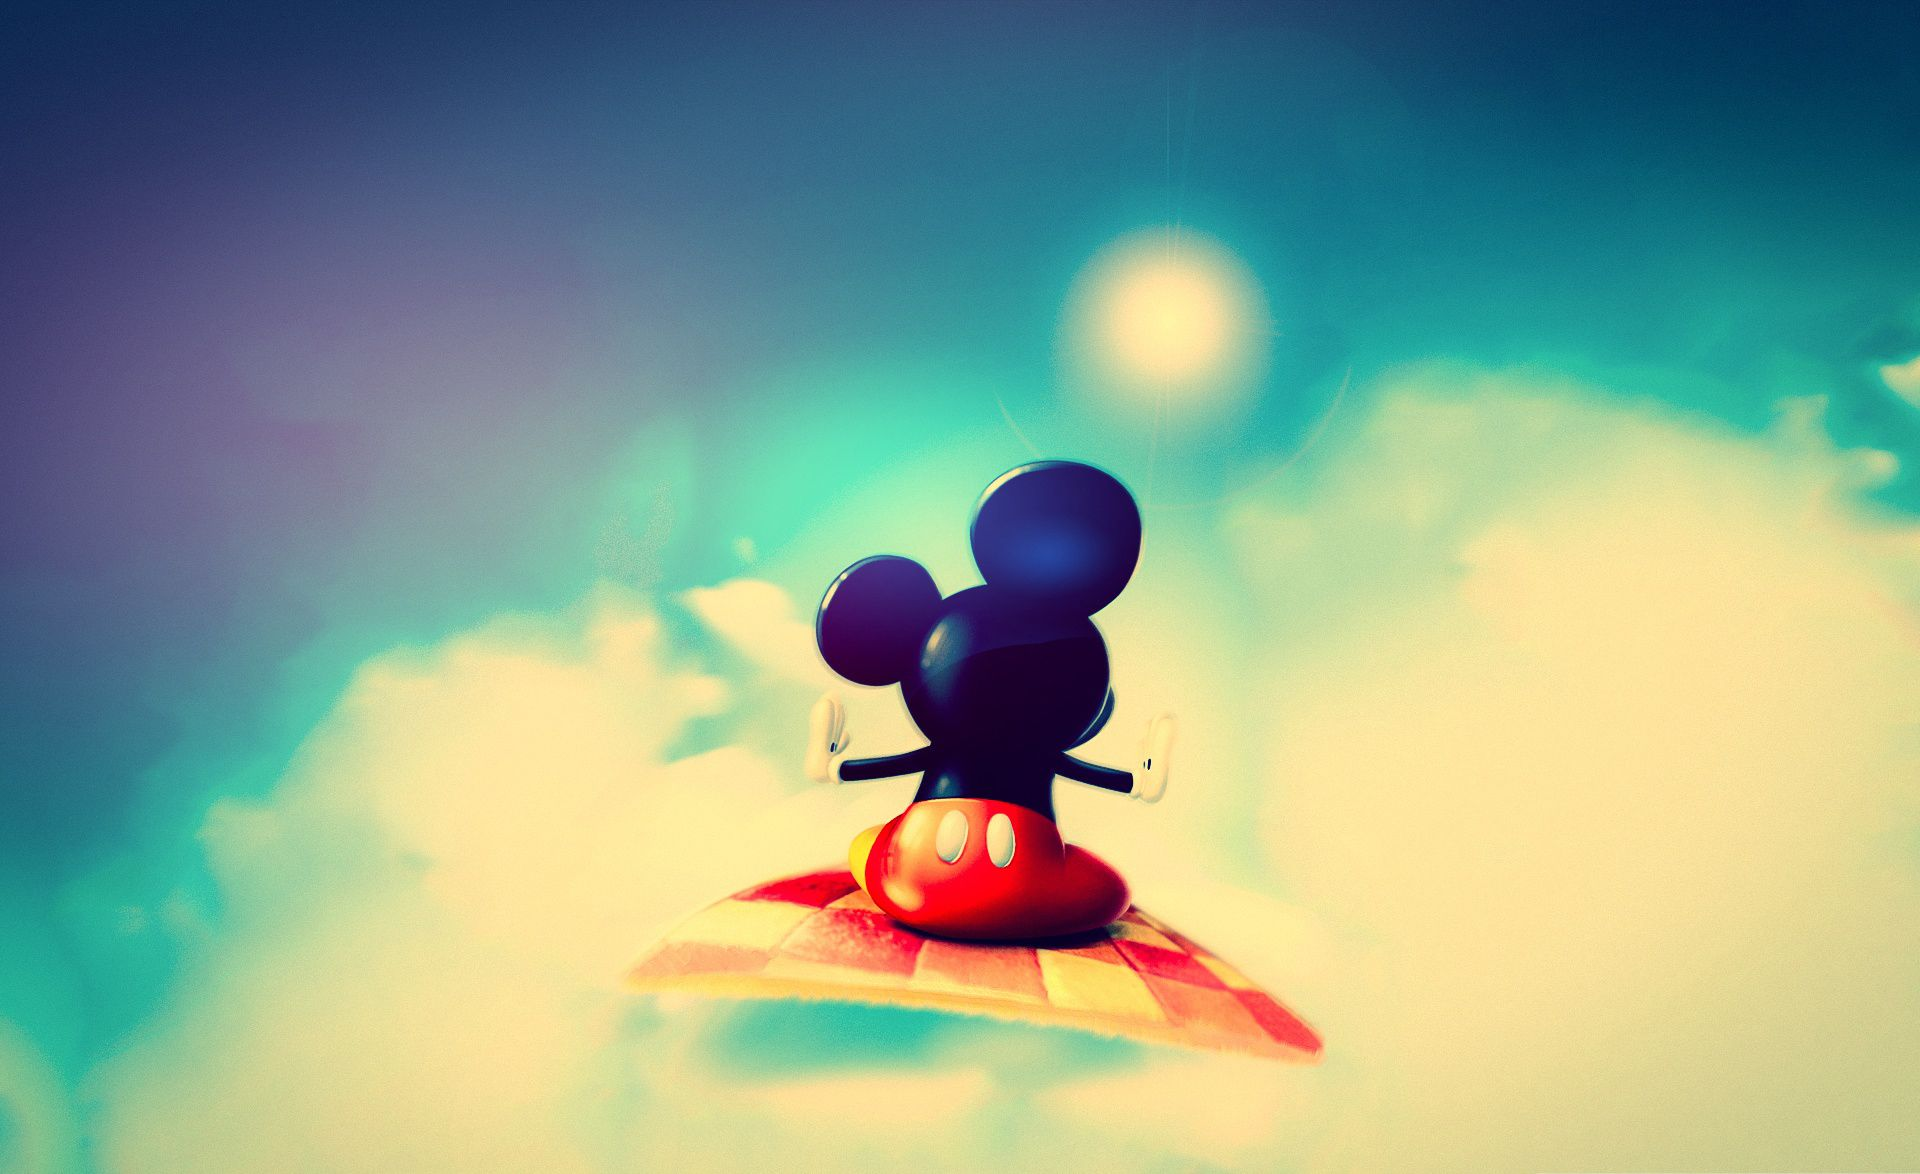 Mickey Mouse Disney Background Cute Disney Wallpaper Disney Desktop Wallpaper